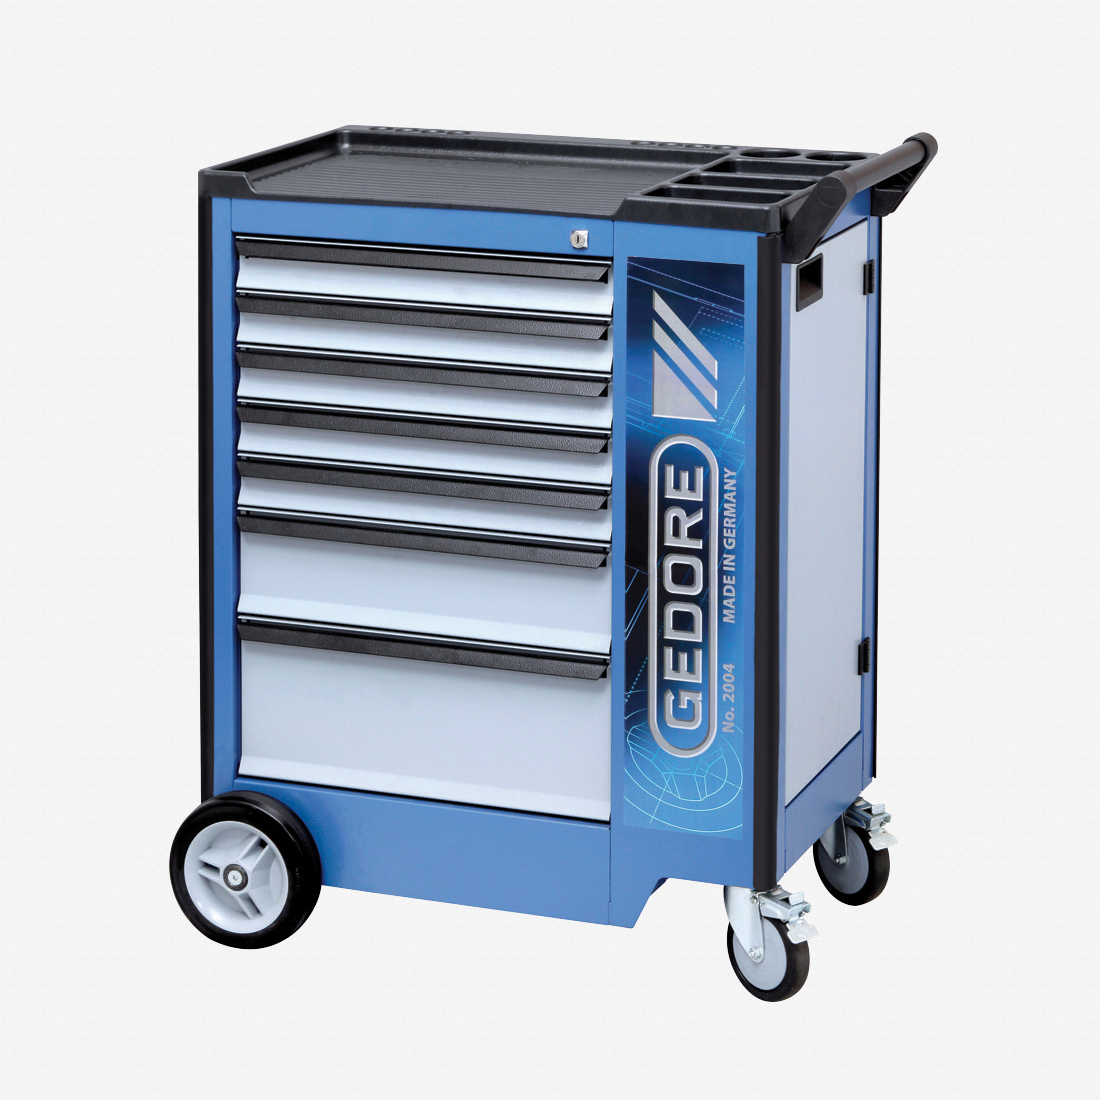 Gedore 2004 0511 Tool trolley with 7 drawers - KC Tool